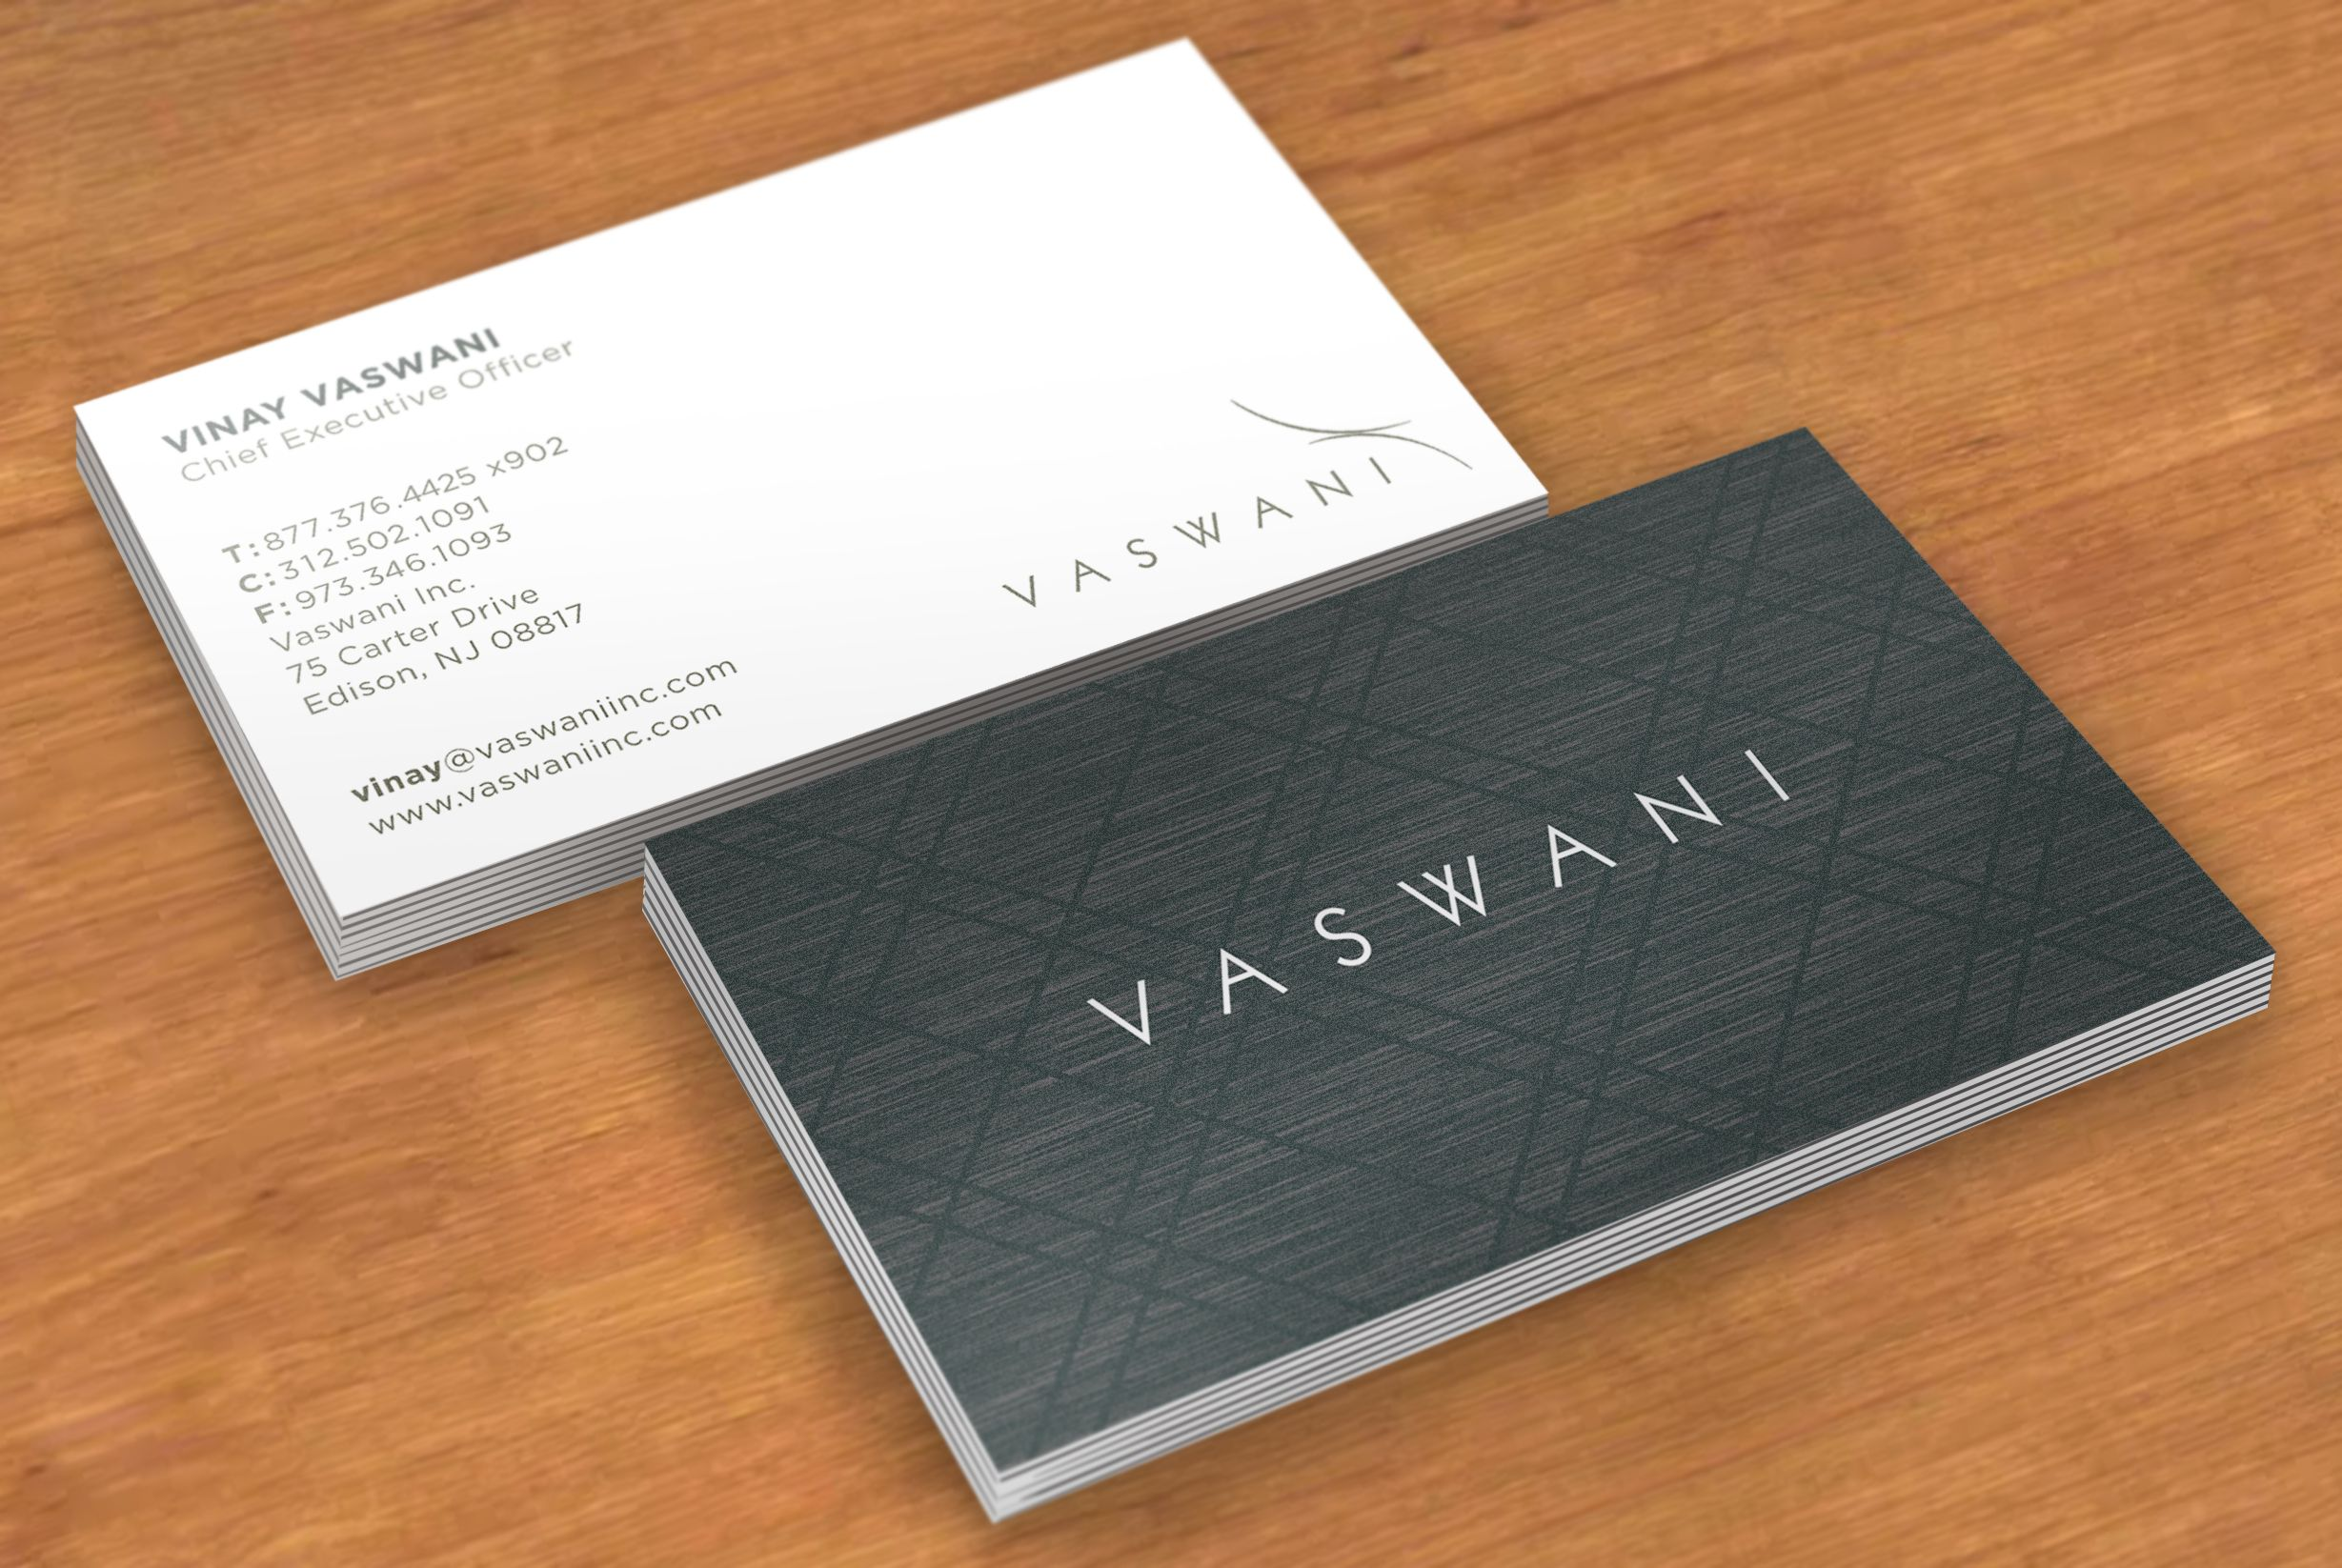 Custom Card Template design a business card : Vaswani Business Card Design : graphic design : Pinterest ...